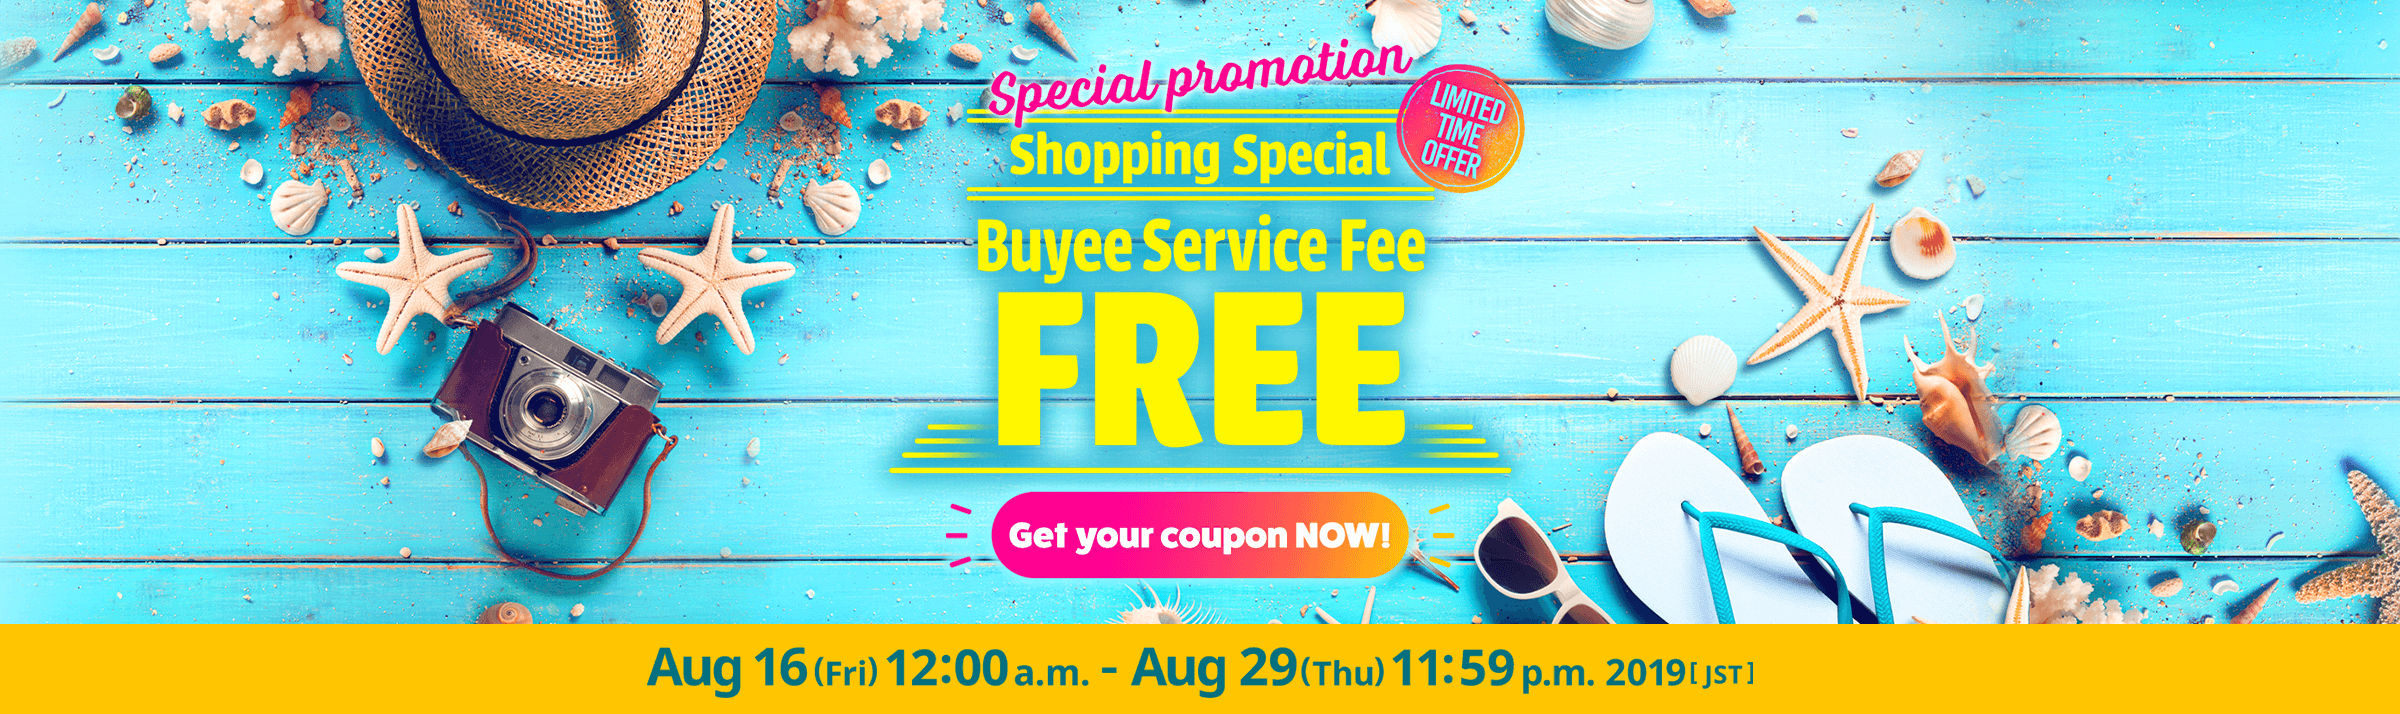 Shopping Special FREE Buyee Service Fee